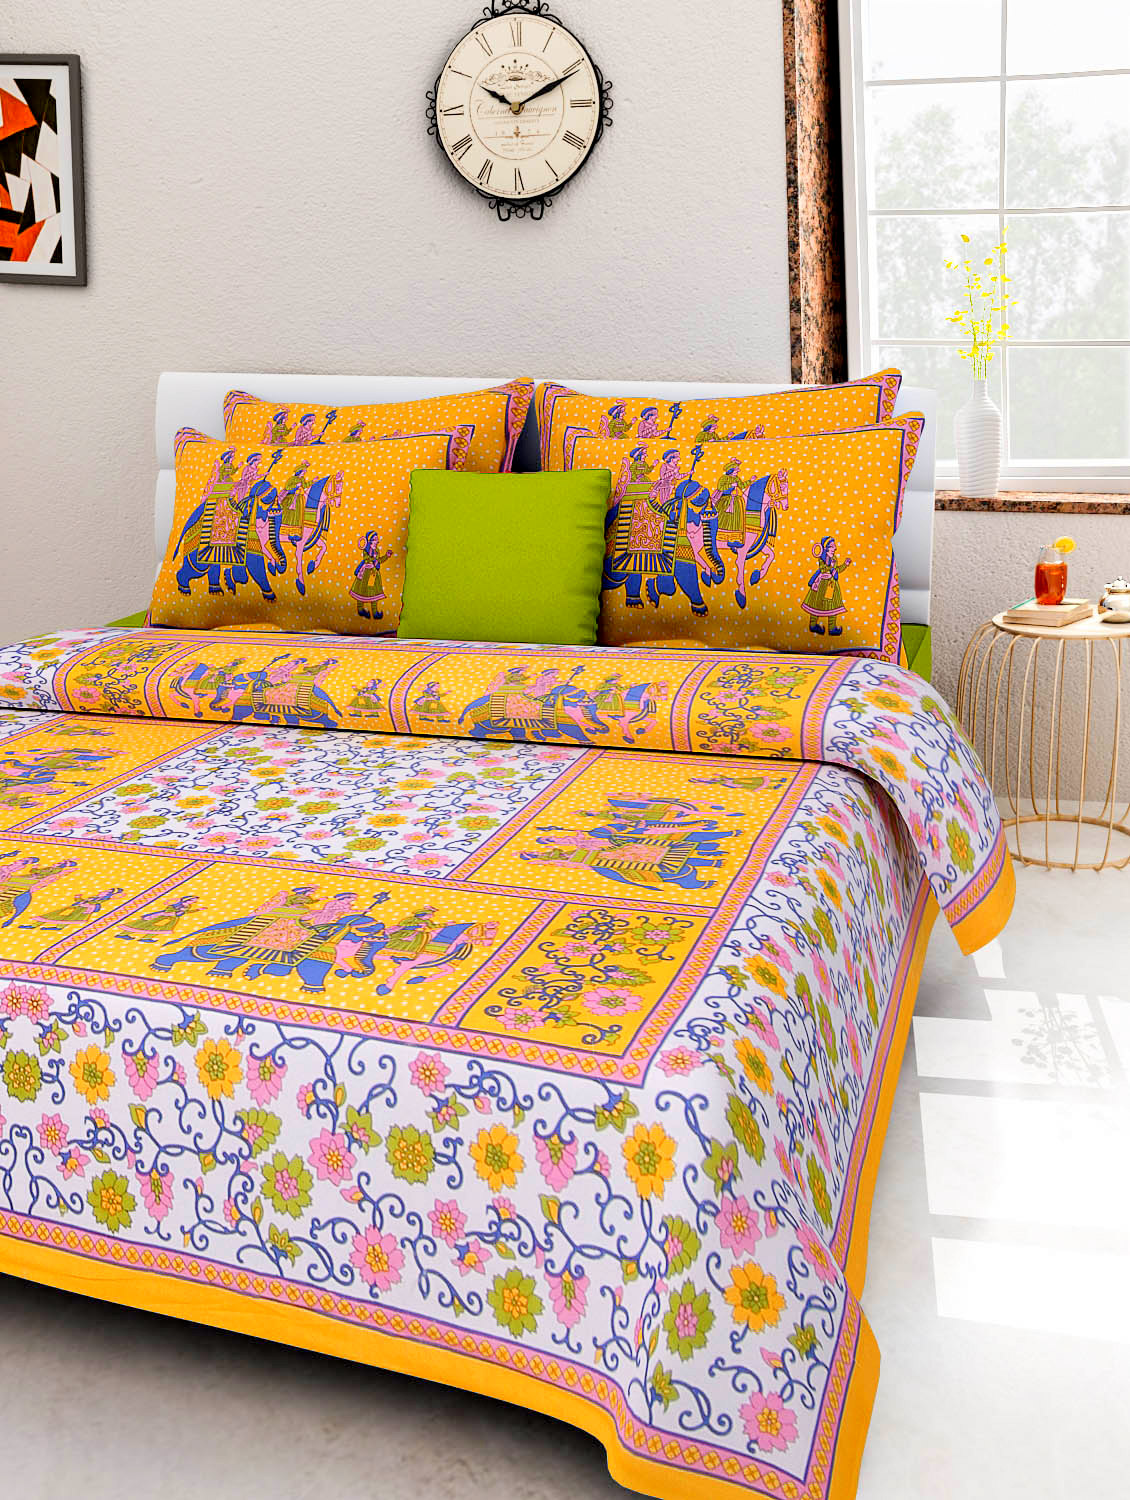 FrionKandy 100% Cotton Printed 120 TC Double Bed Sheet With 2 Pillow Covers - (82 Inch X 92 Inch, Yellow) SHKAP1038